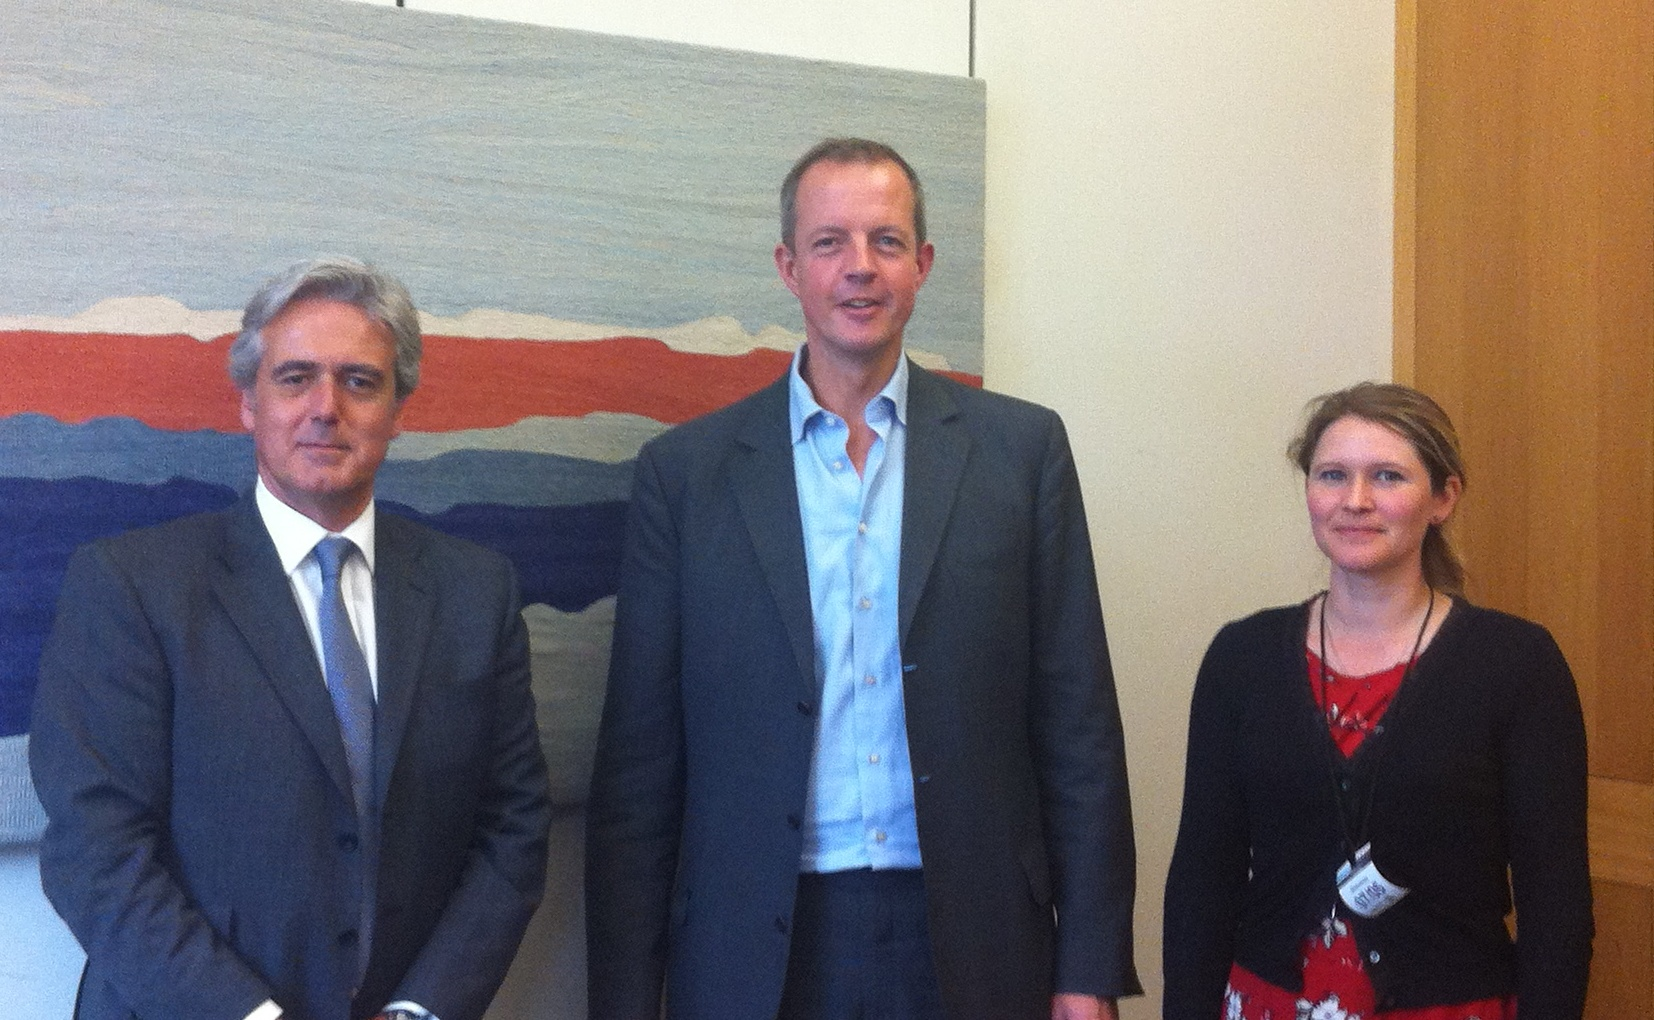 PLANNING DISCUSSION: From left, Mark Garnier MP, Nick Boles MP and Rebecca Mayamn.